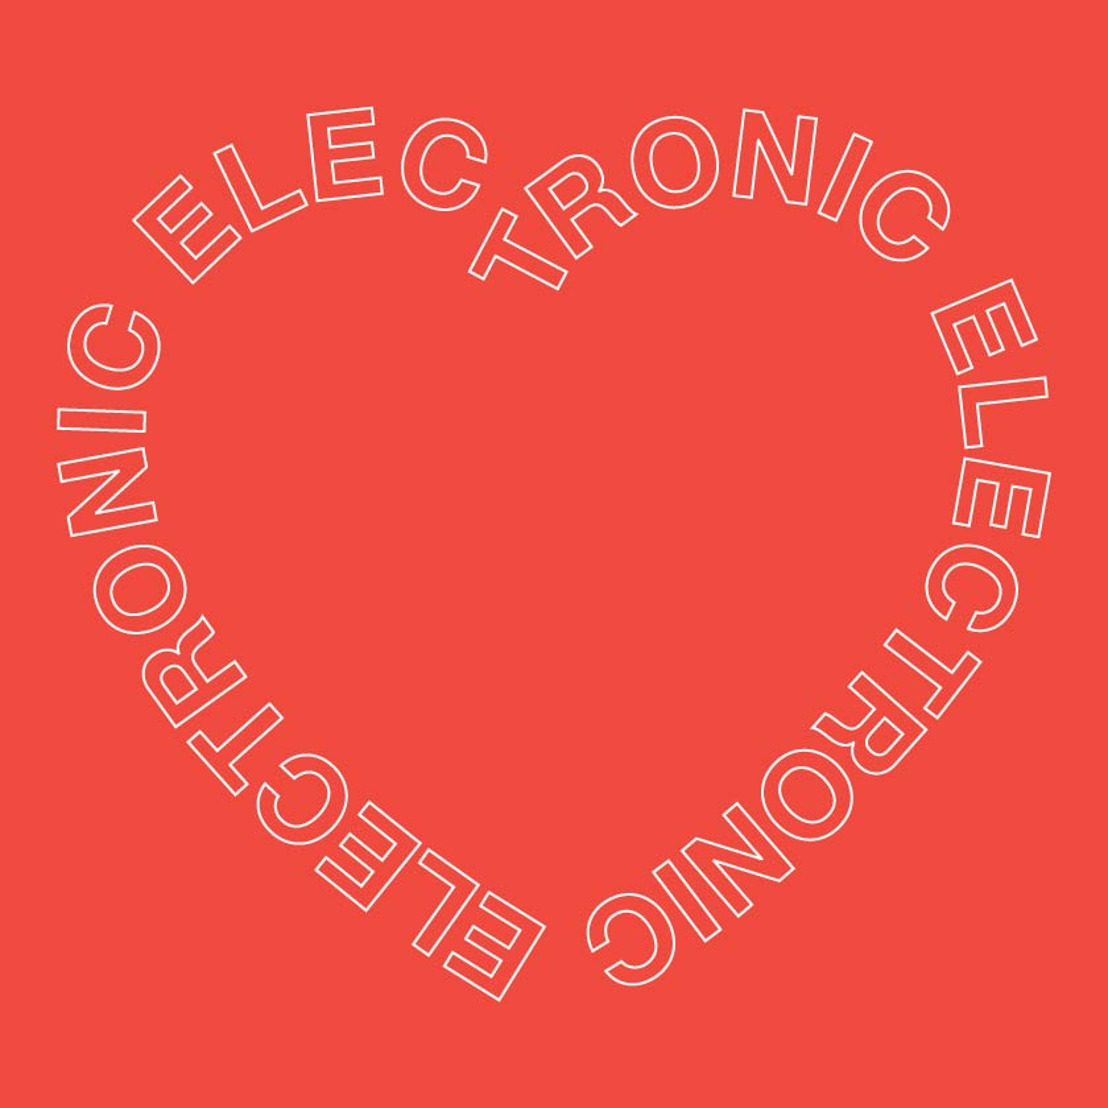 Spring will bring an electronic love story